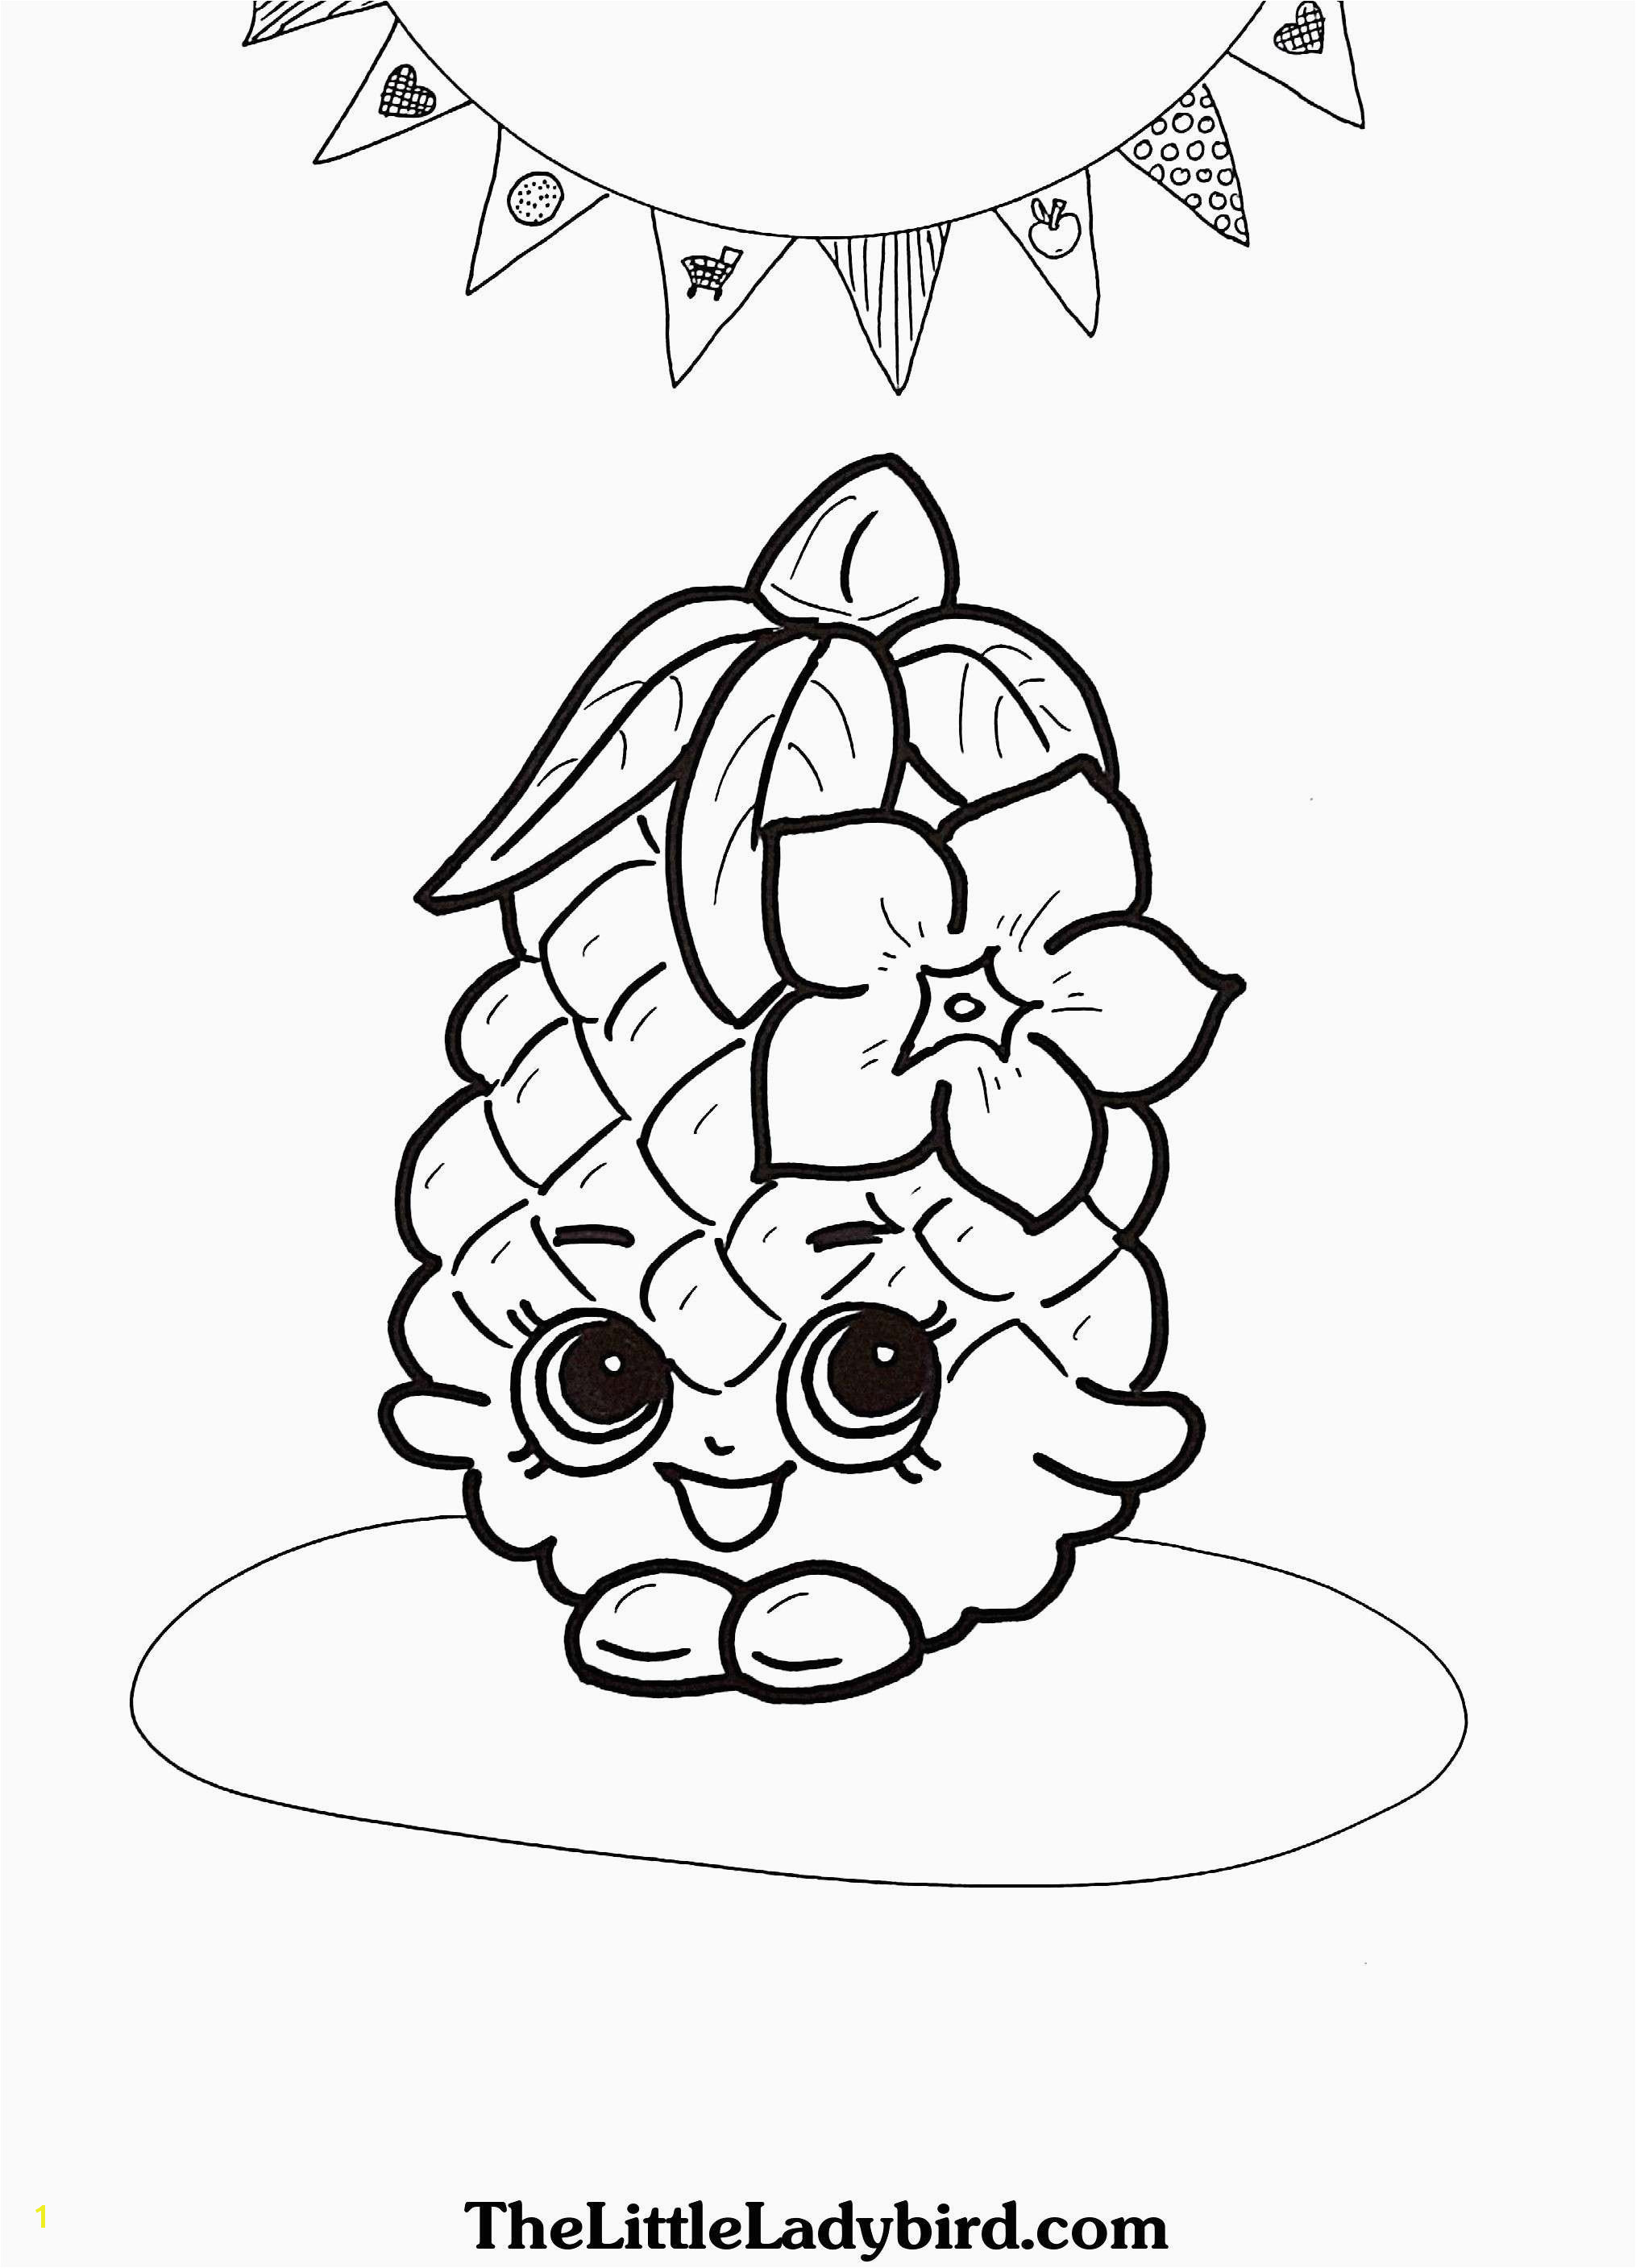 Cool Car Coloring Pages Tiana Coloring Pages Download thephotosync